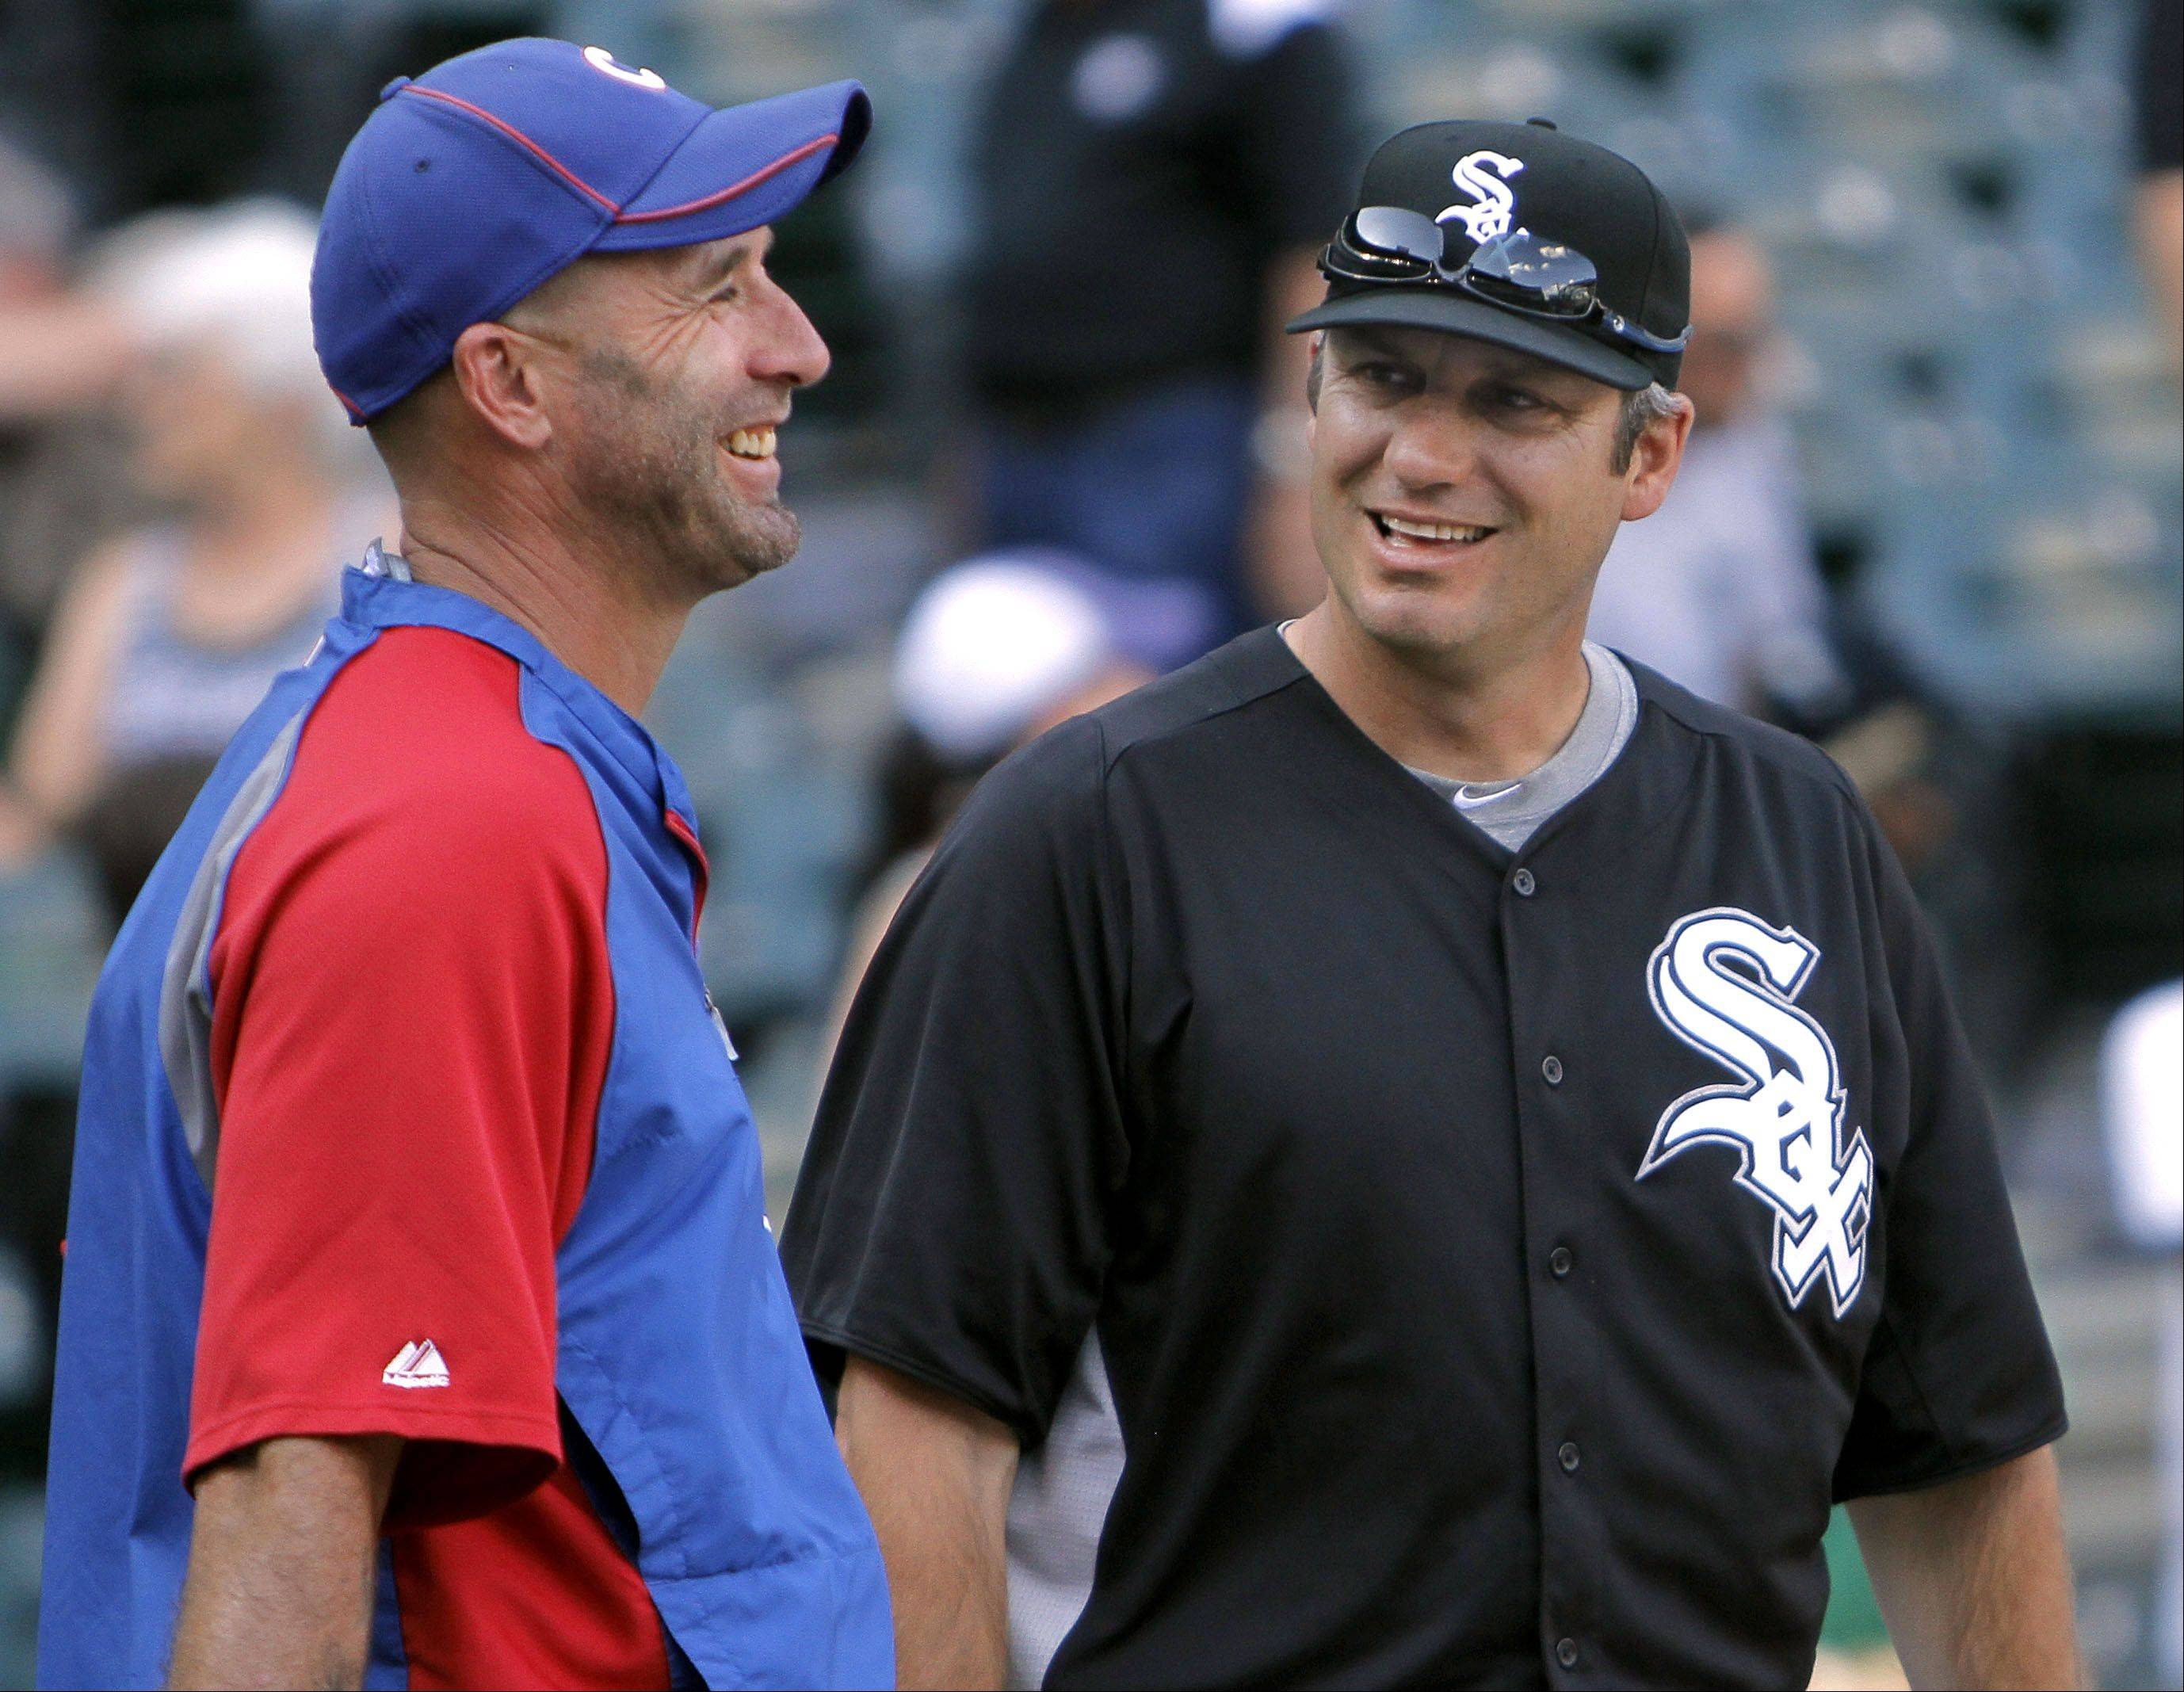 Cubs manager Dale Sveum knew he would be in for a difficult first season, but his performance next year may be more important to his future. On the other side of town, Mike North says White Sox manager Robin Ventura has exceeded expectations.